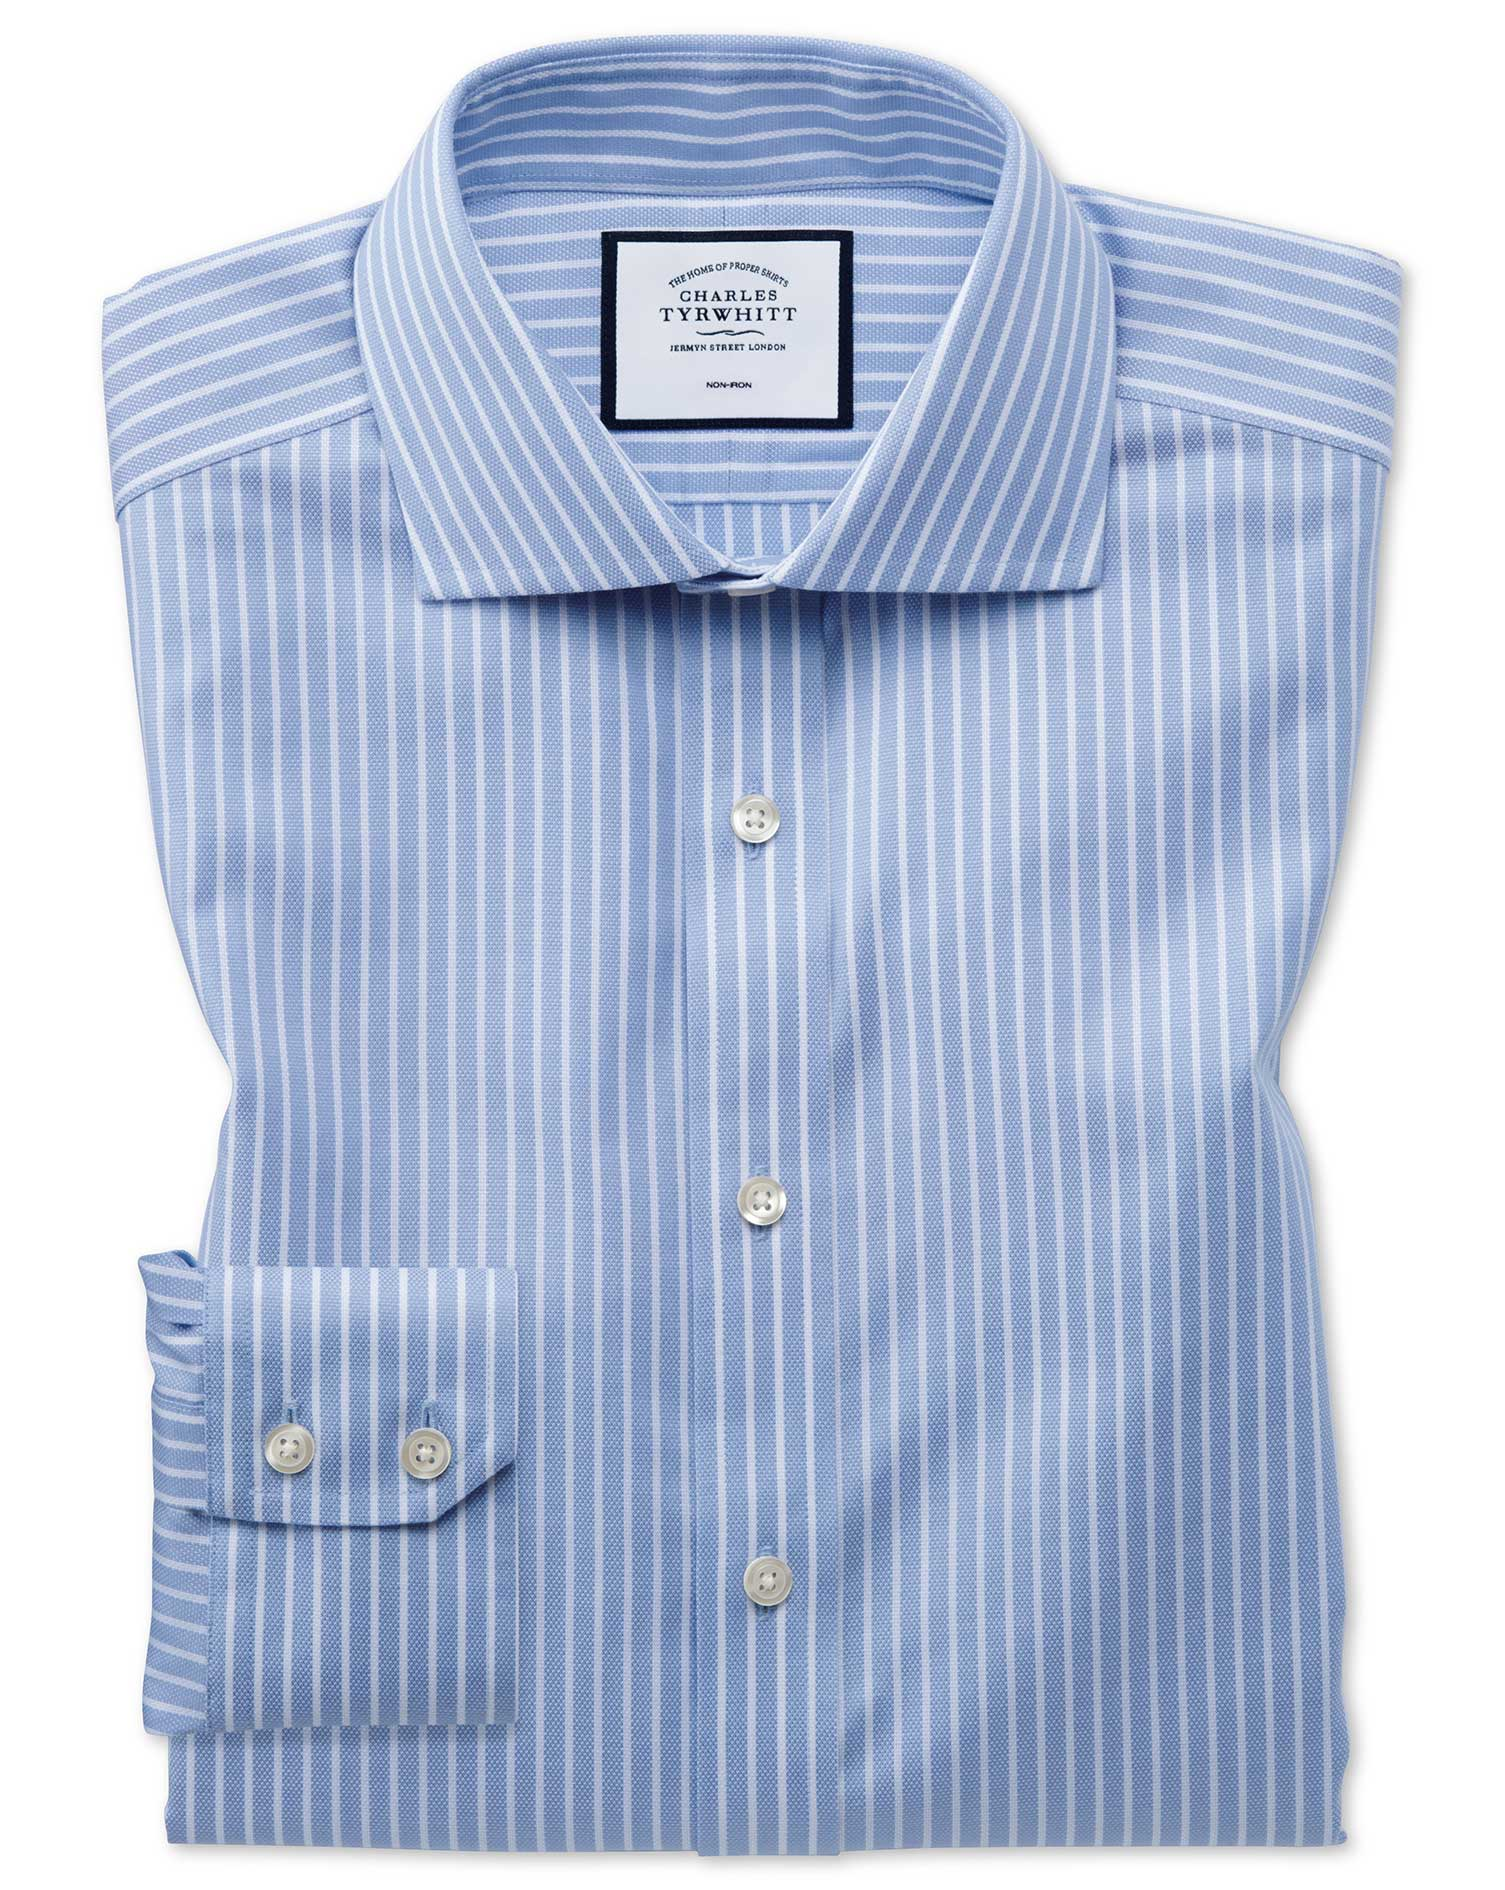 Extra Slim Fit Non-Iron Cotton Stretch Oxford Sky Blue and White Check Formal Shirt Single Cuff Size